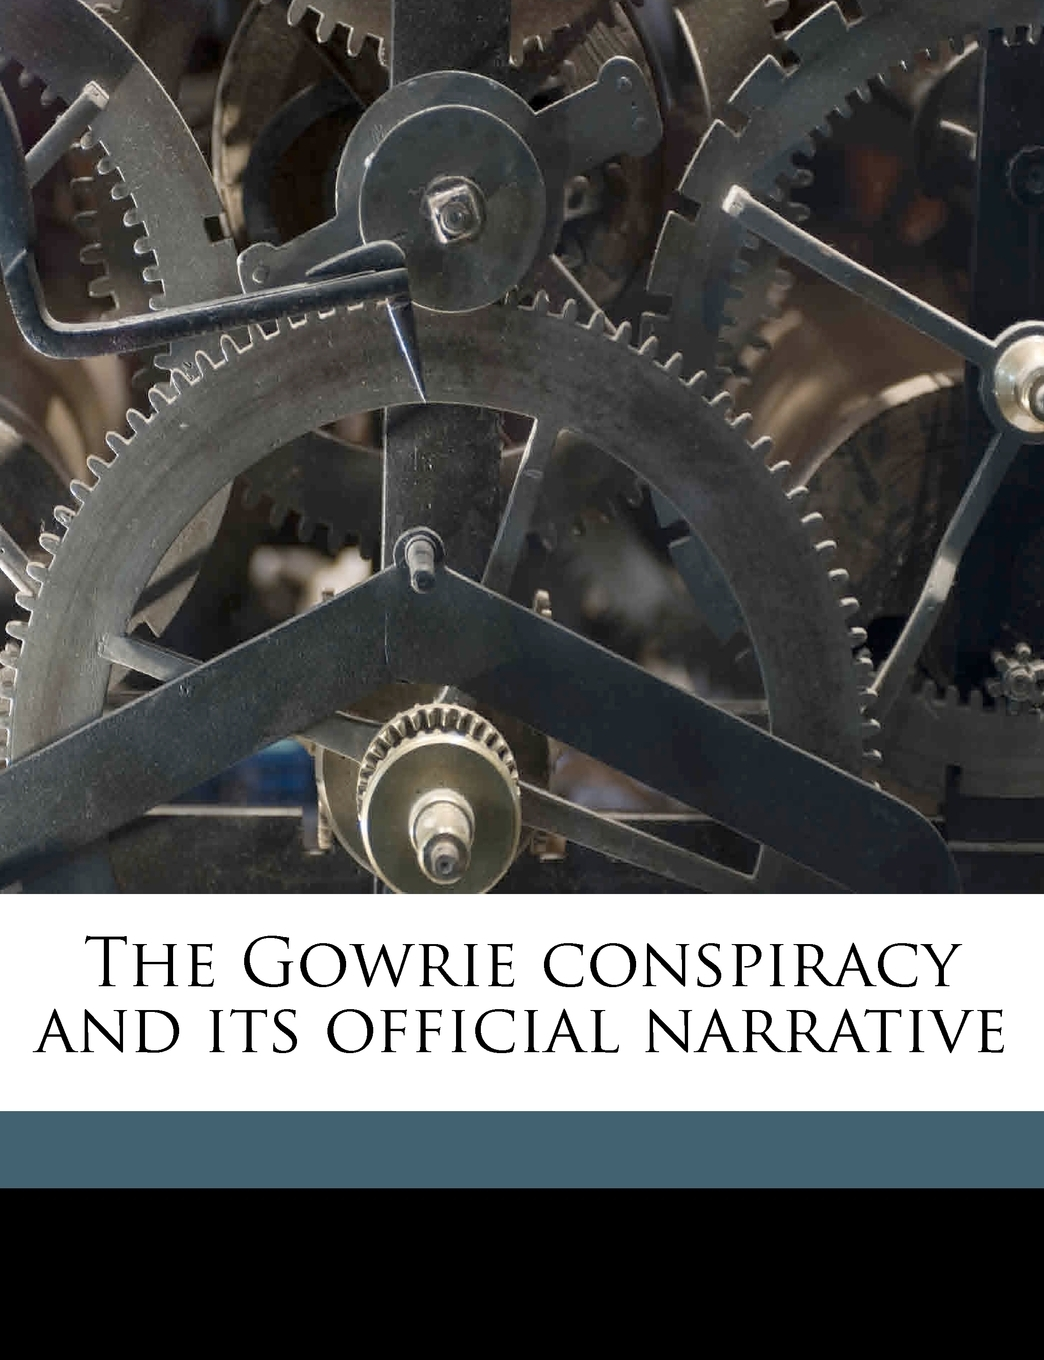 Blood of Kings: The Stuarts, the Ruthvens and the Gowrie Conspiracy